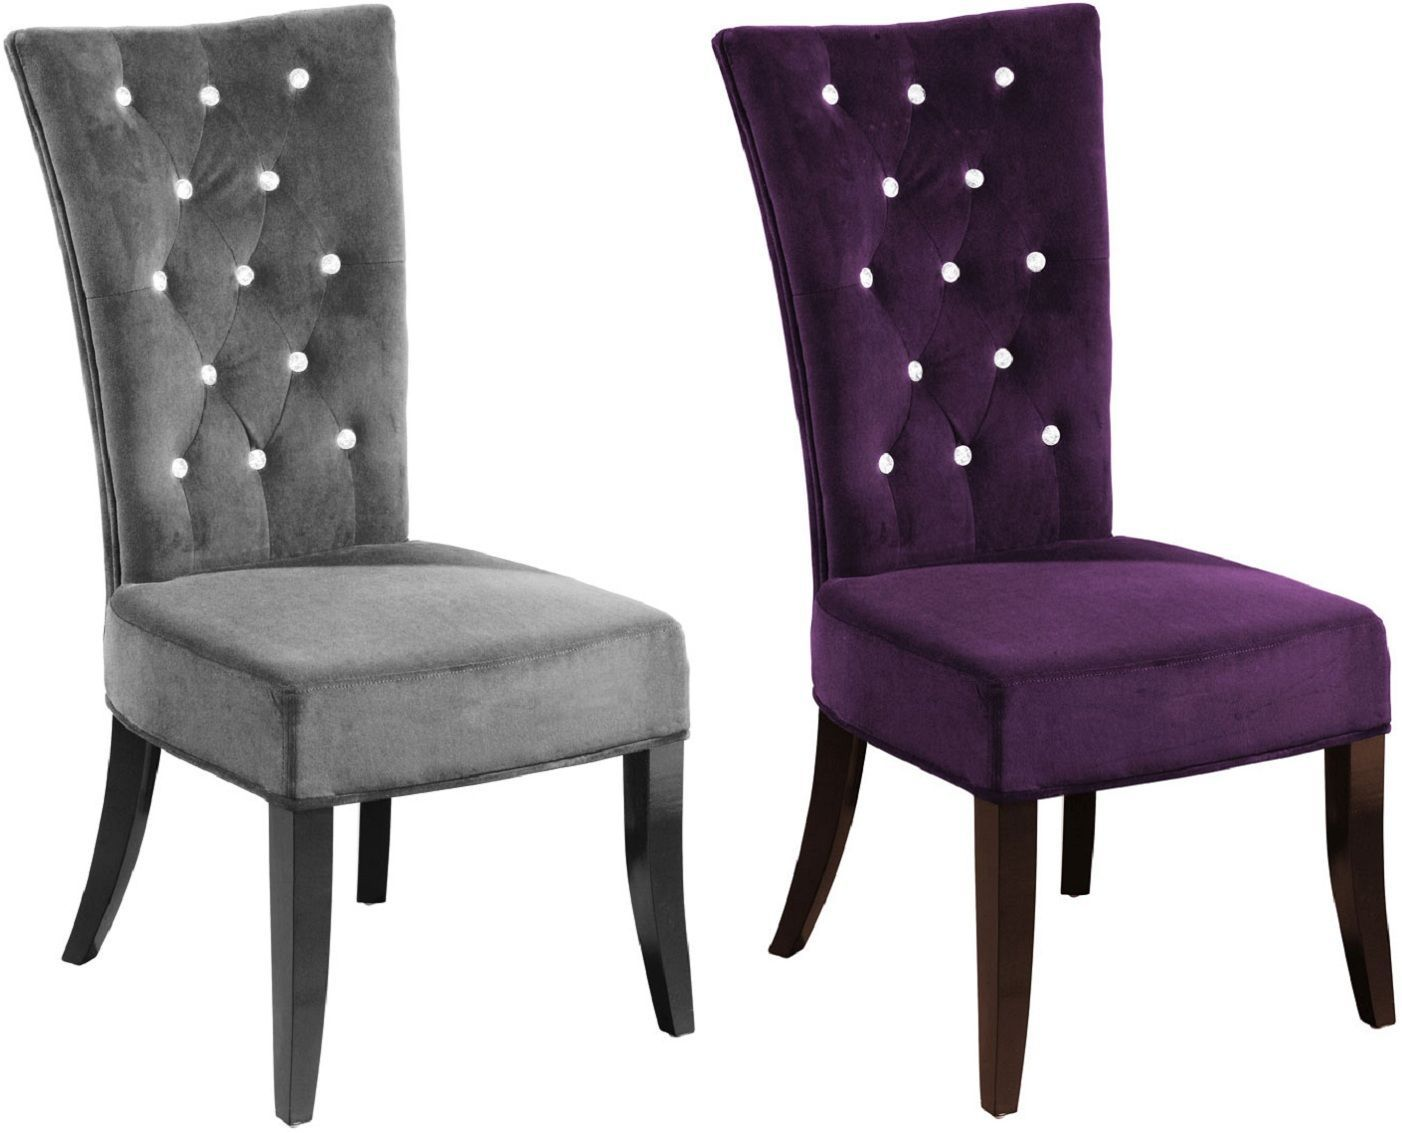 Purple Chairs For Bedroom  Bedroom chairs uk, Purple dining